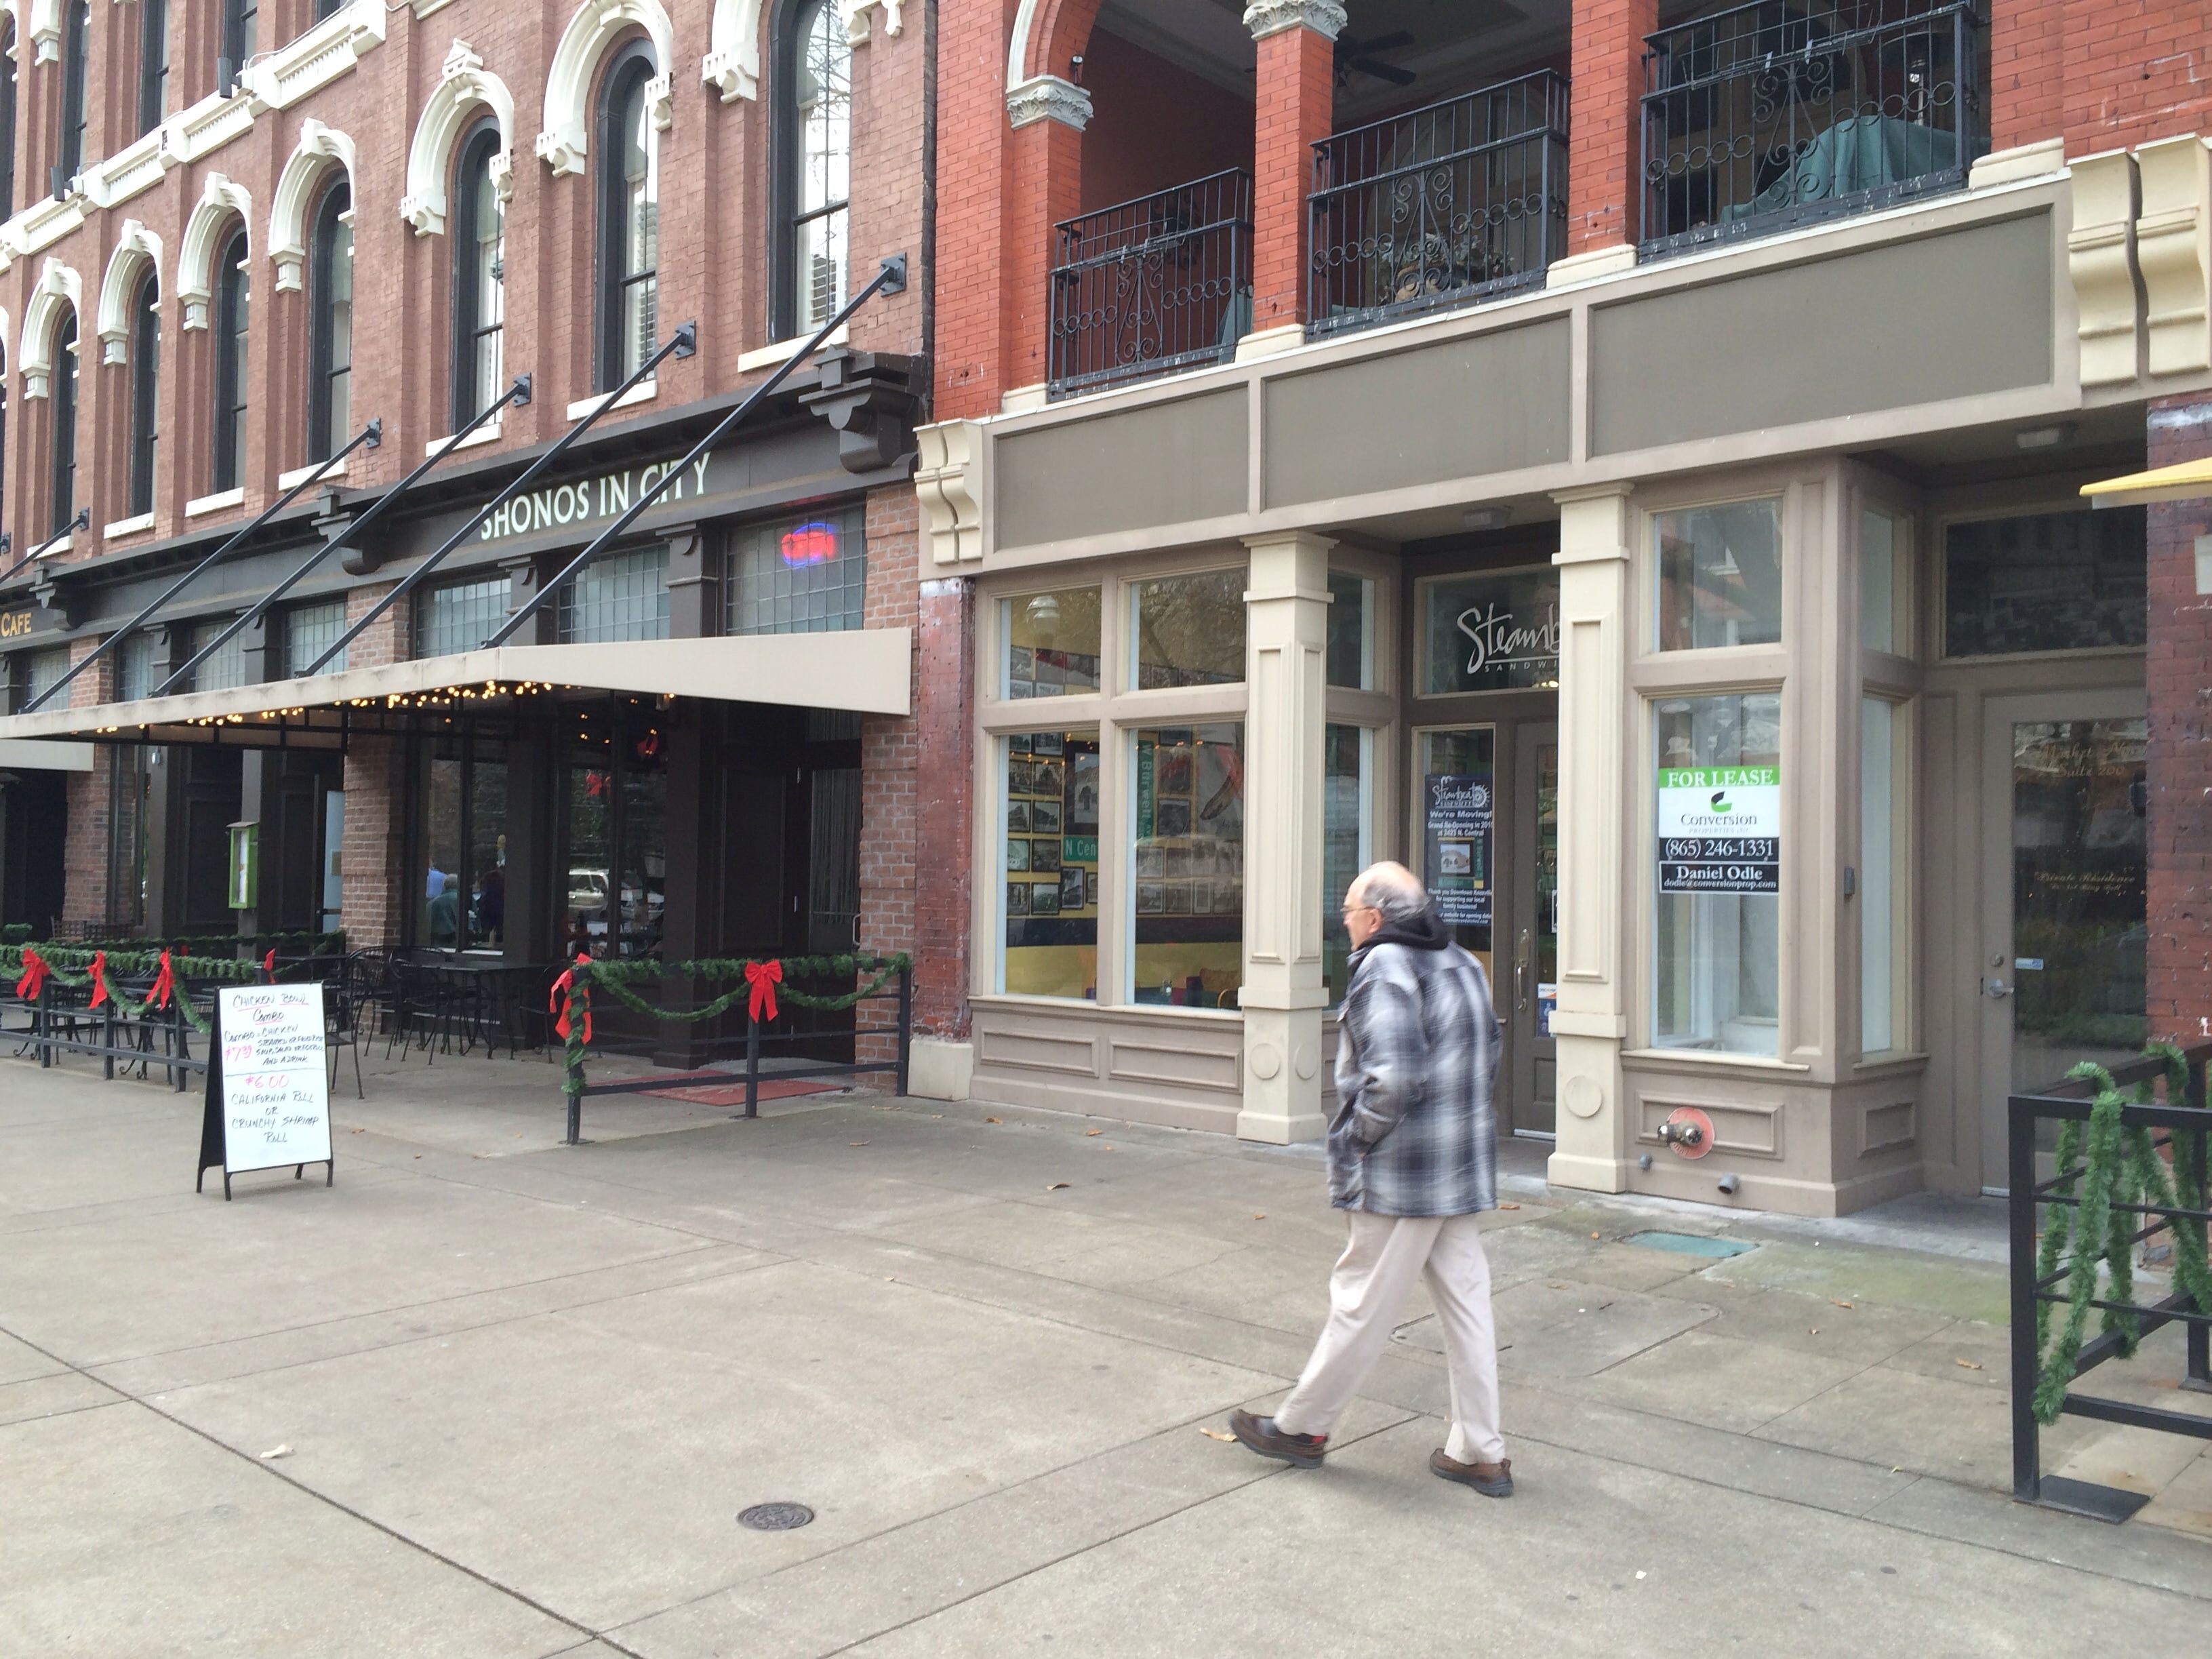 A pedestrian walks by the Steamboat Sandwiches and Shonos in City buildings on Market Square, on Friday.